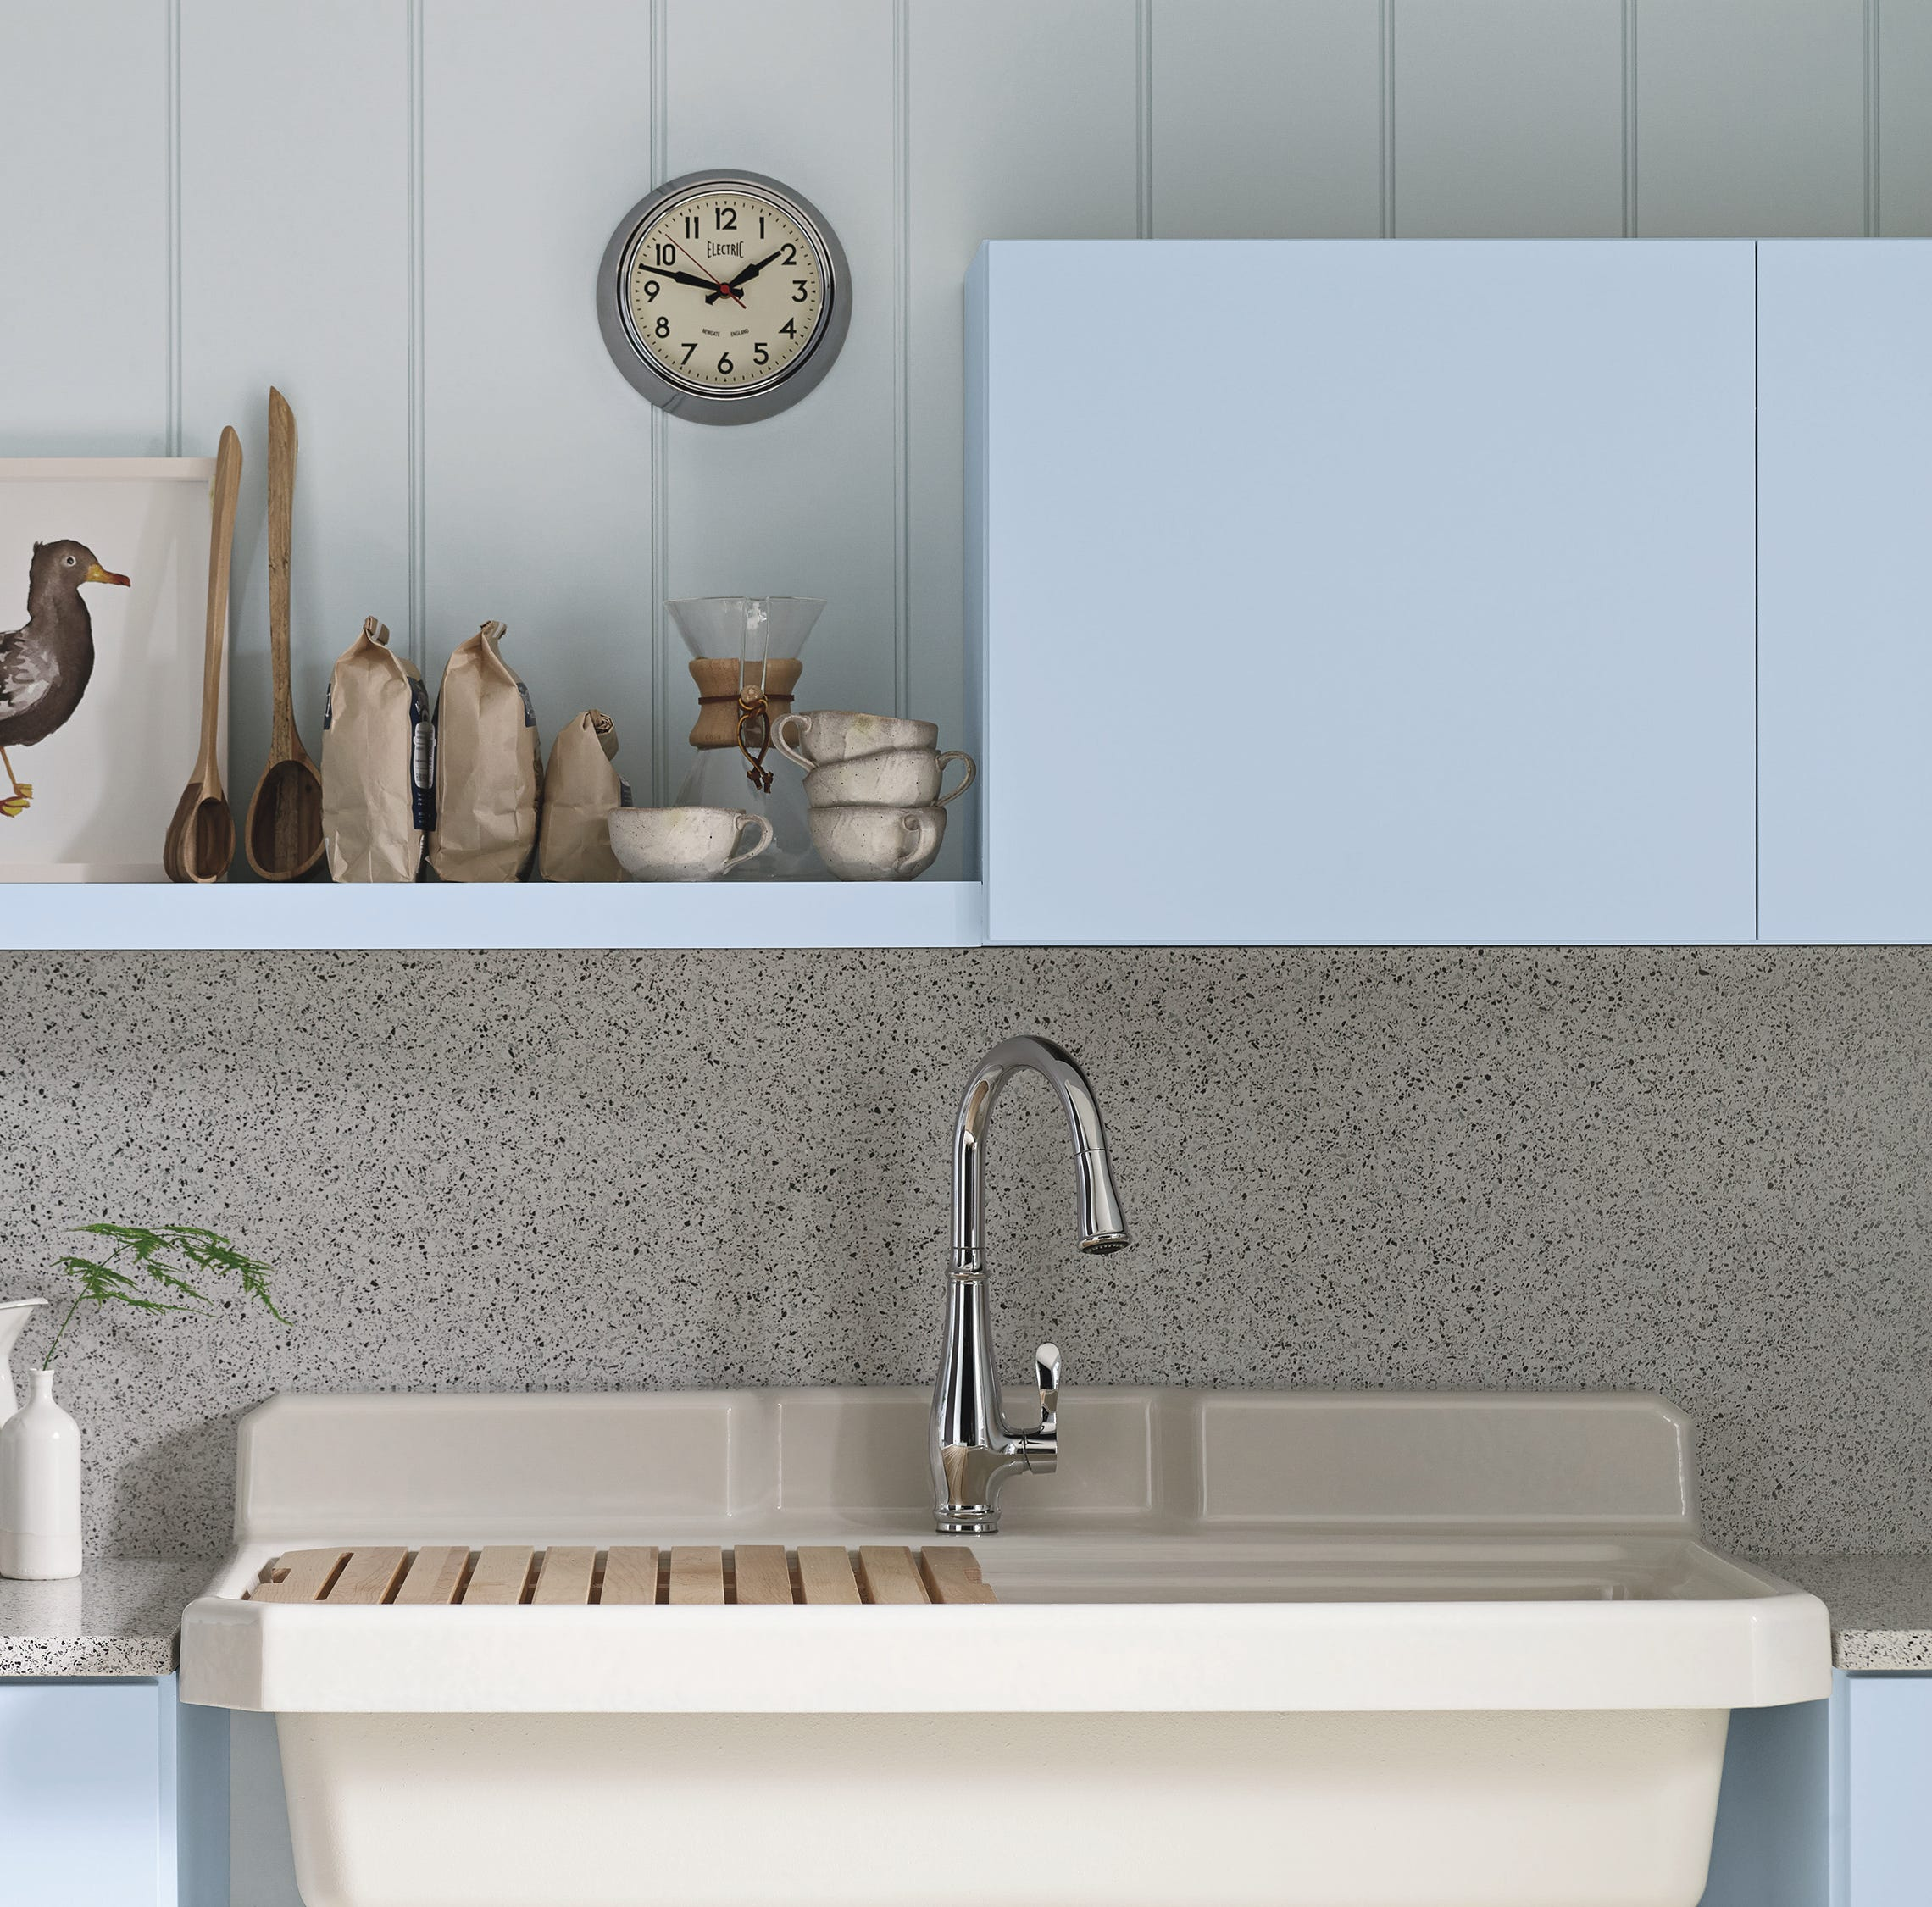 Plumber: Double-duty sinks give you more options